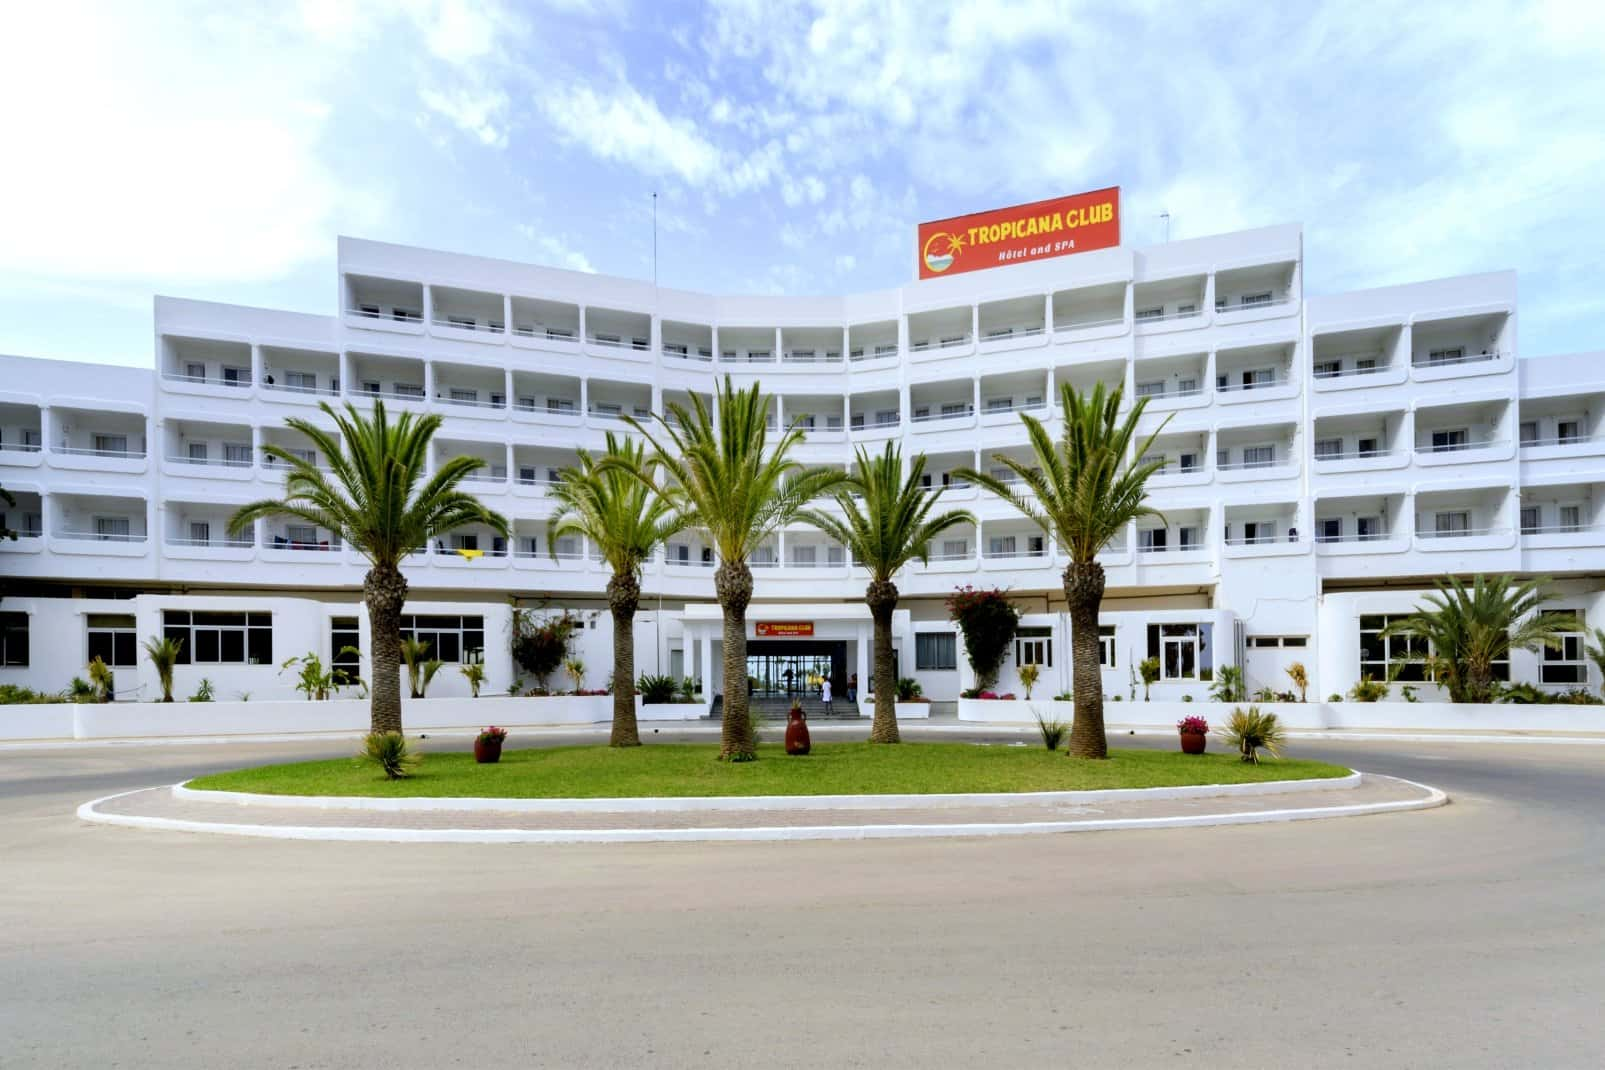 Tropicana Club & Spa